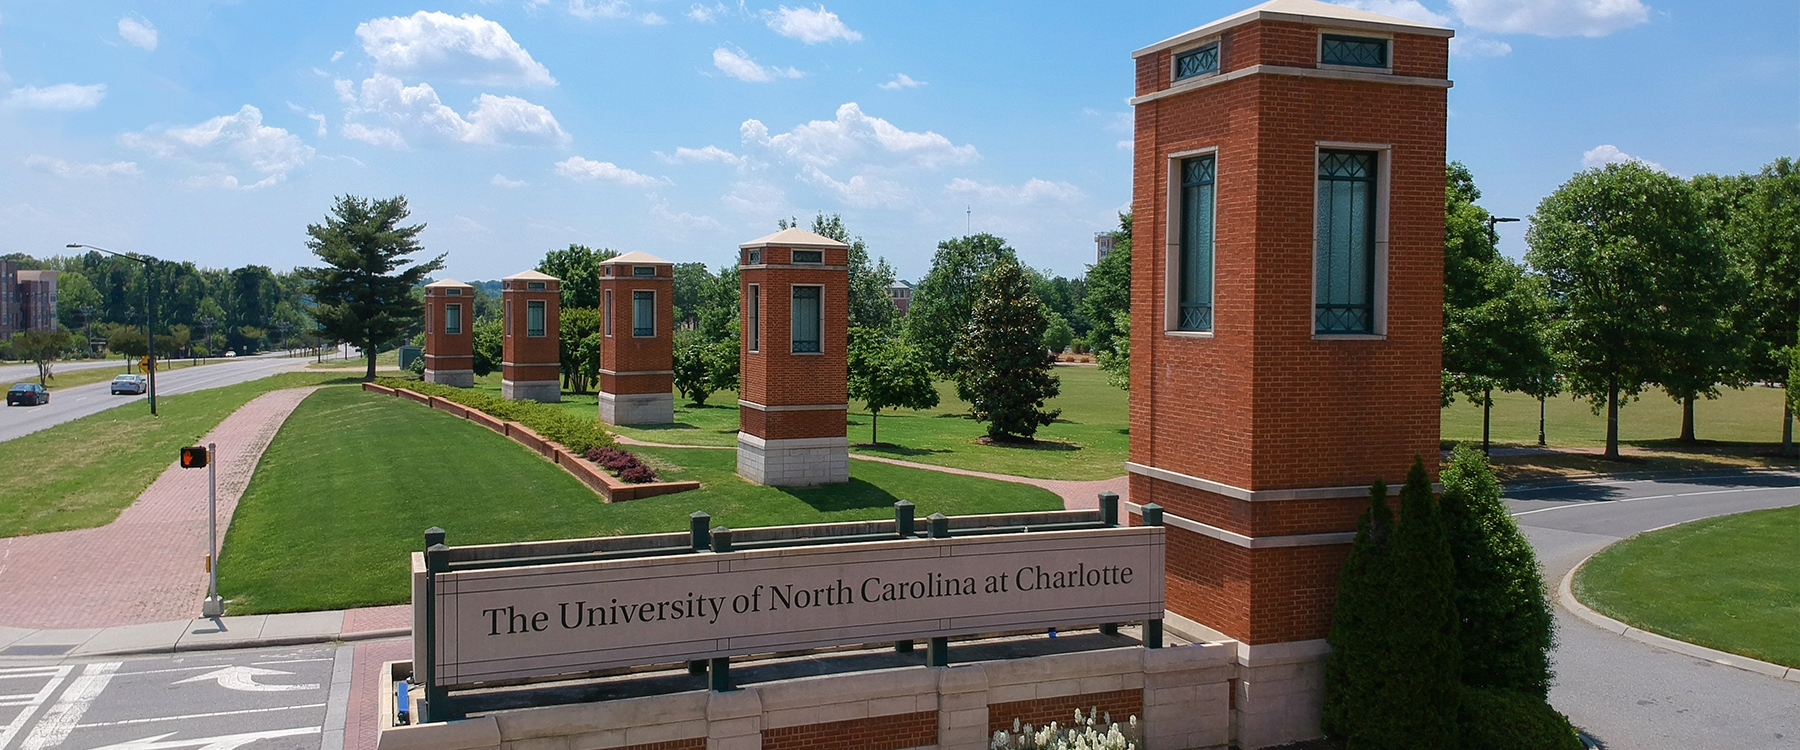 university of south carolina admissions requirements